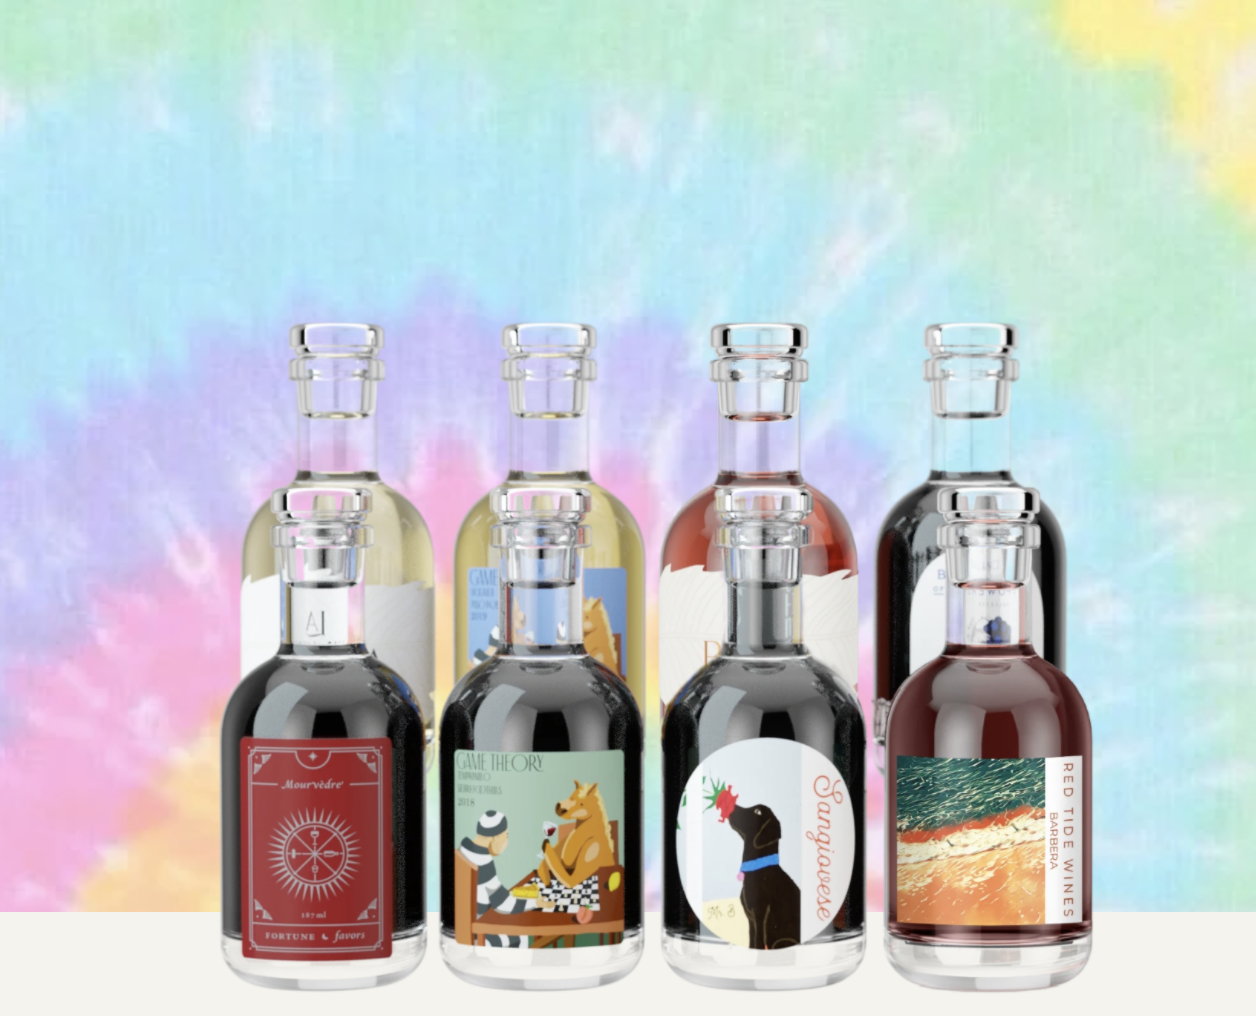 Product shot of eight mini bottles of wine on tie-dye background